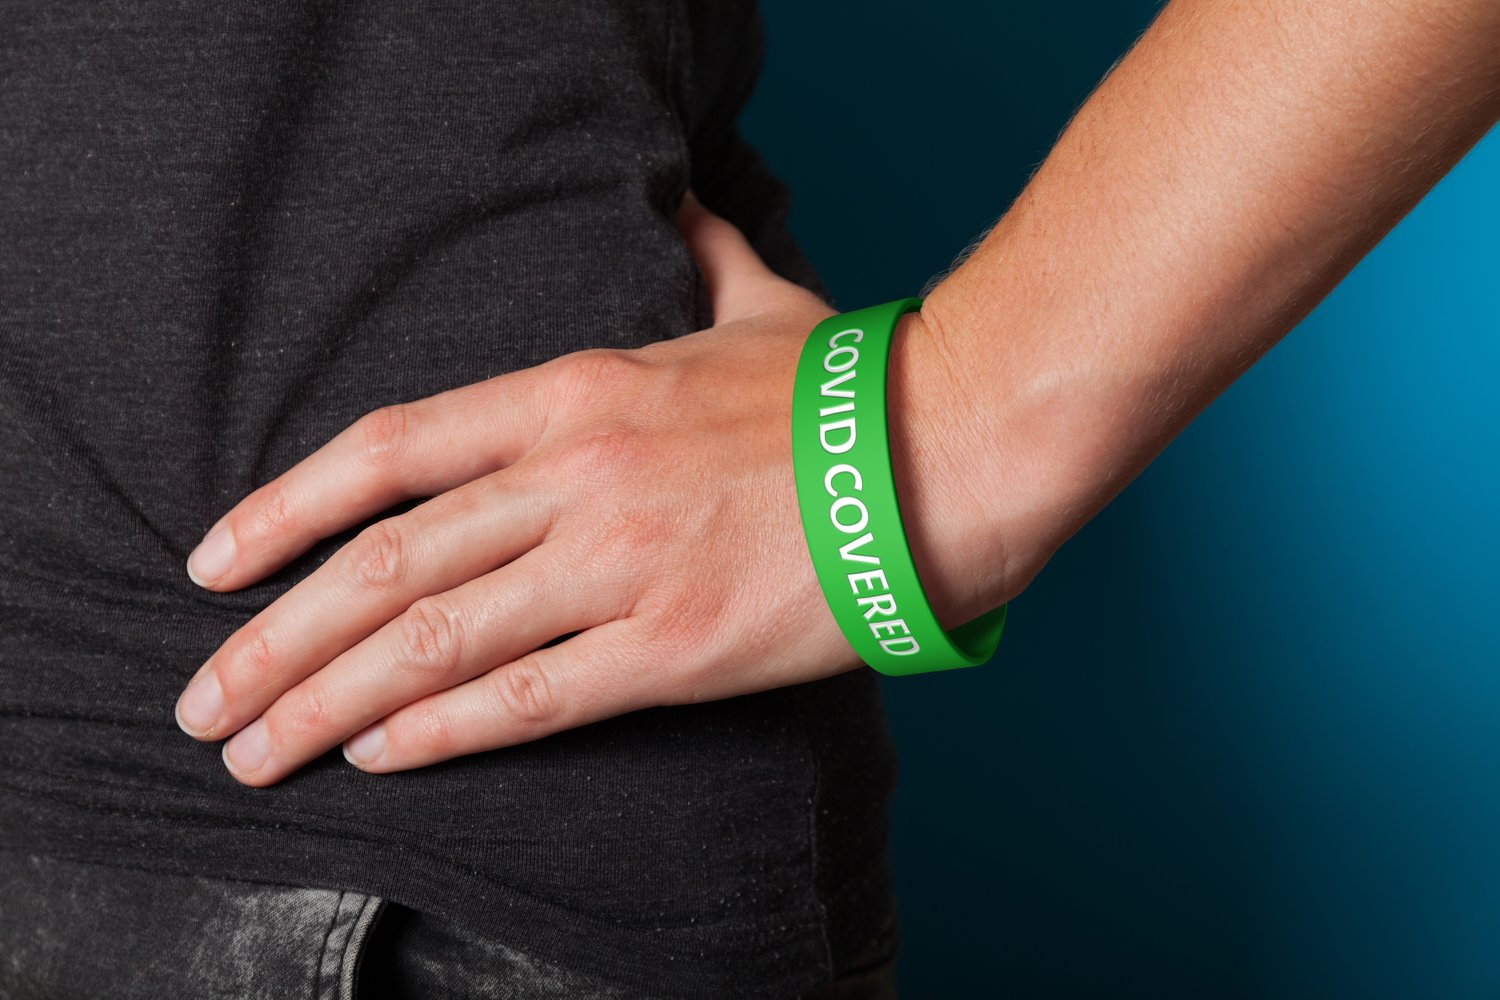 The Covid Covered wristband is green and bears those two words on both sides, signifying that its wearer has been vaccinated.